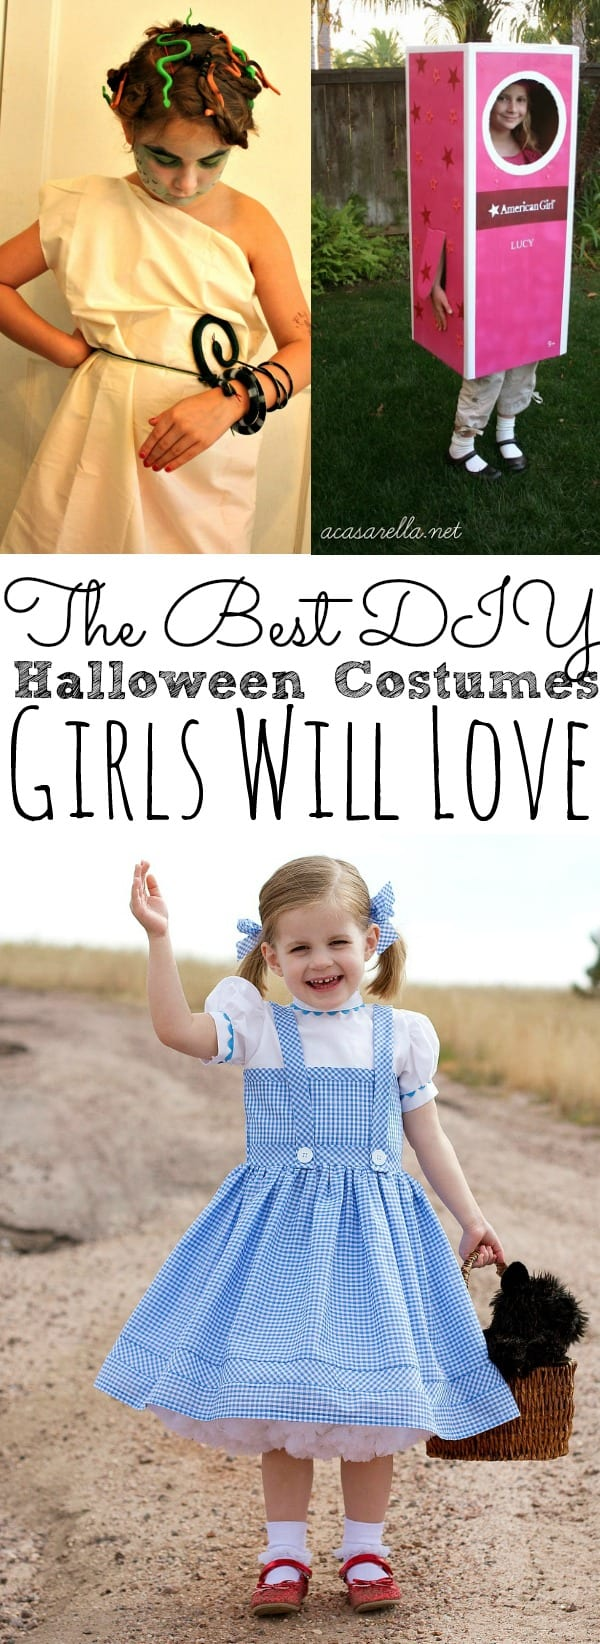 DIY Halloween Costumes For Girls